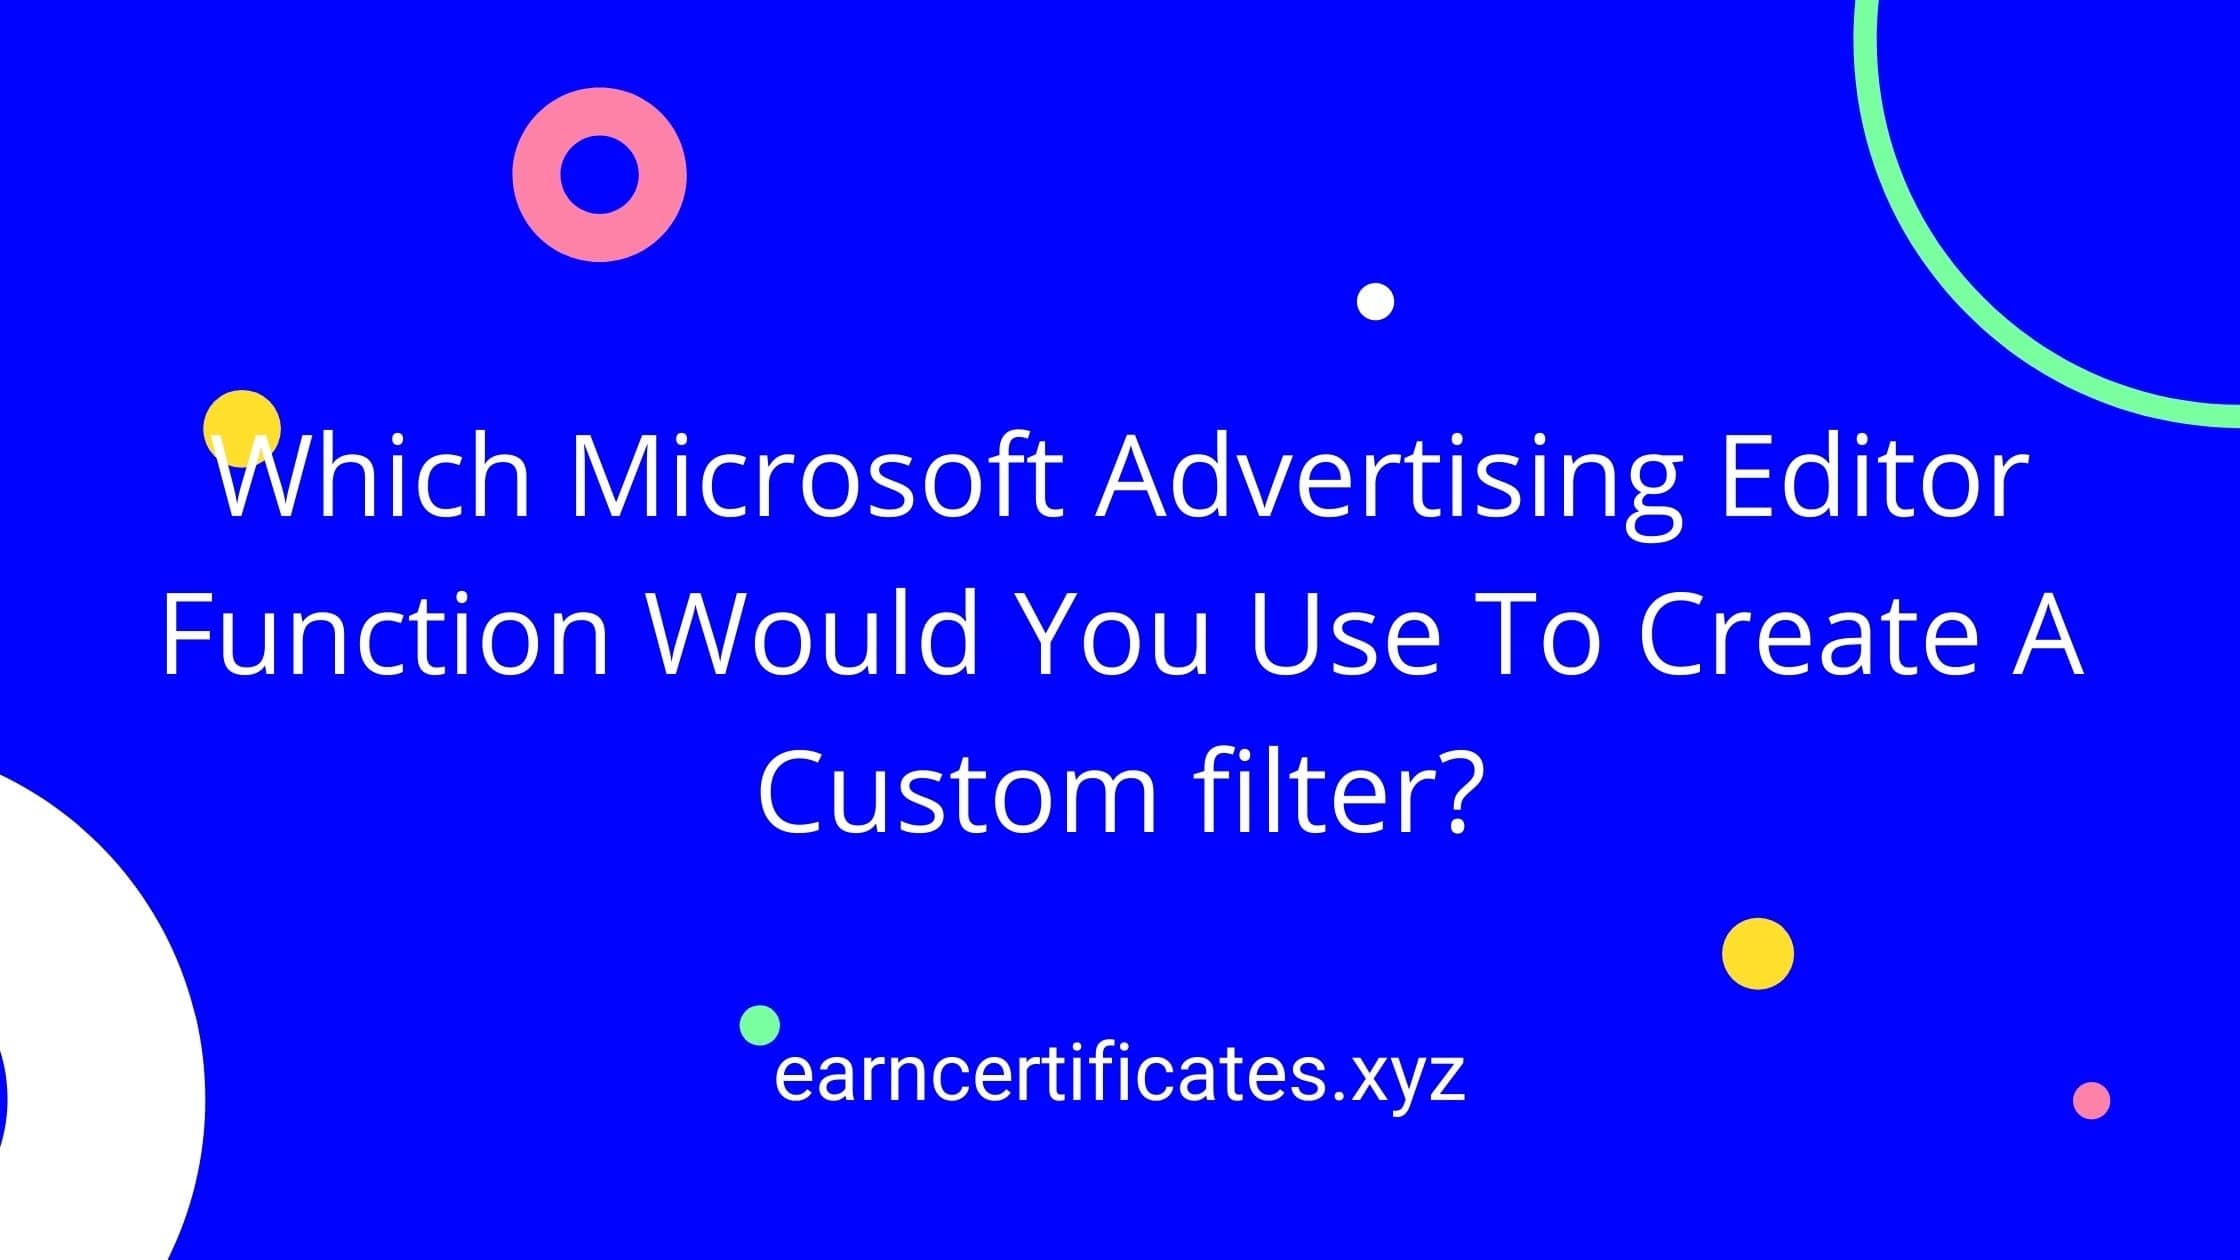 Which Microsoft Advertising Editor Function Would You Use To Create A Custom filter?